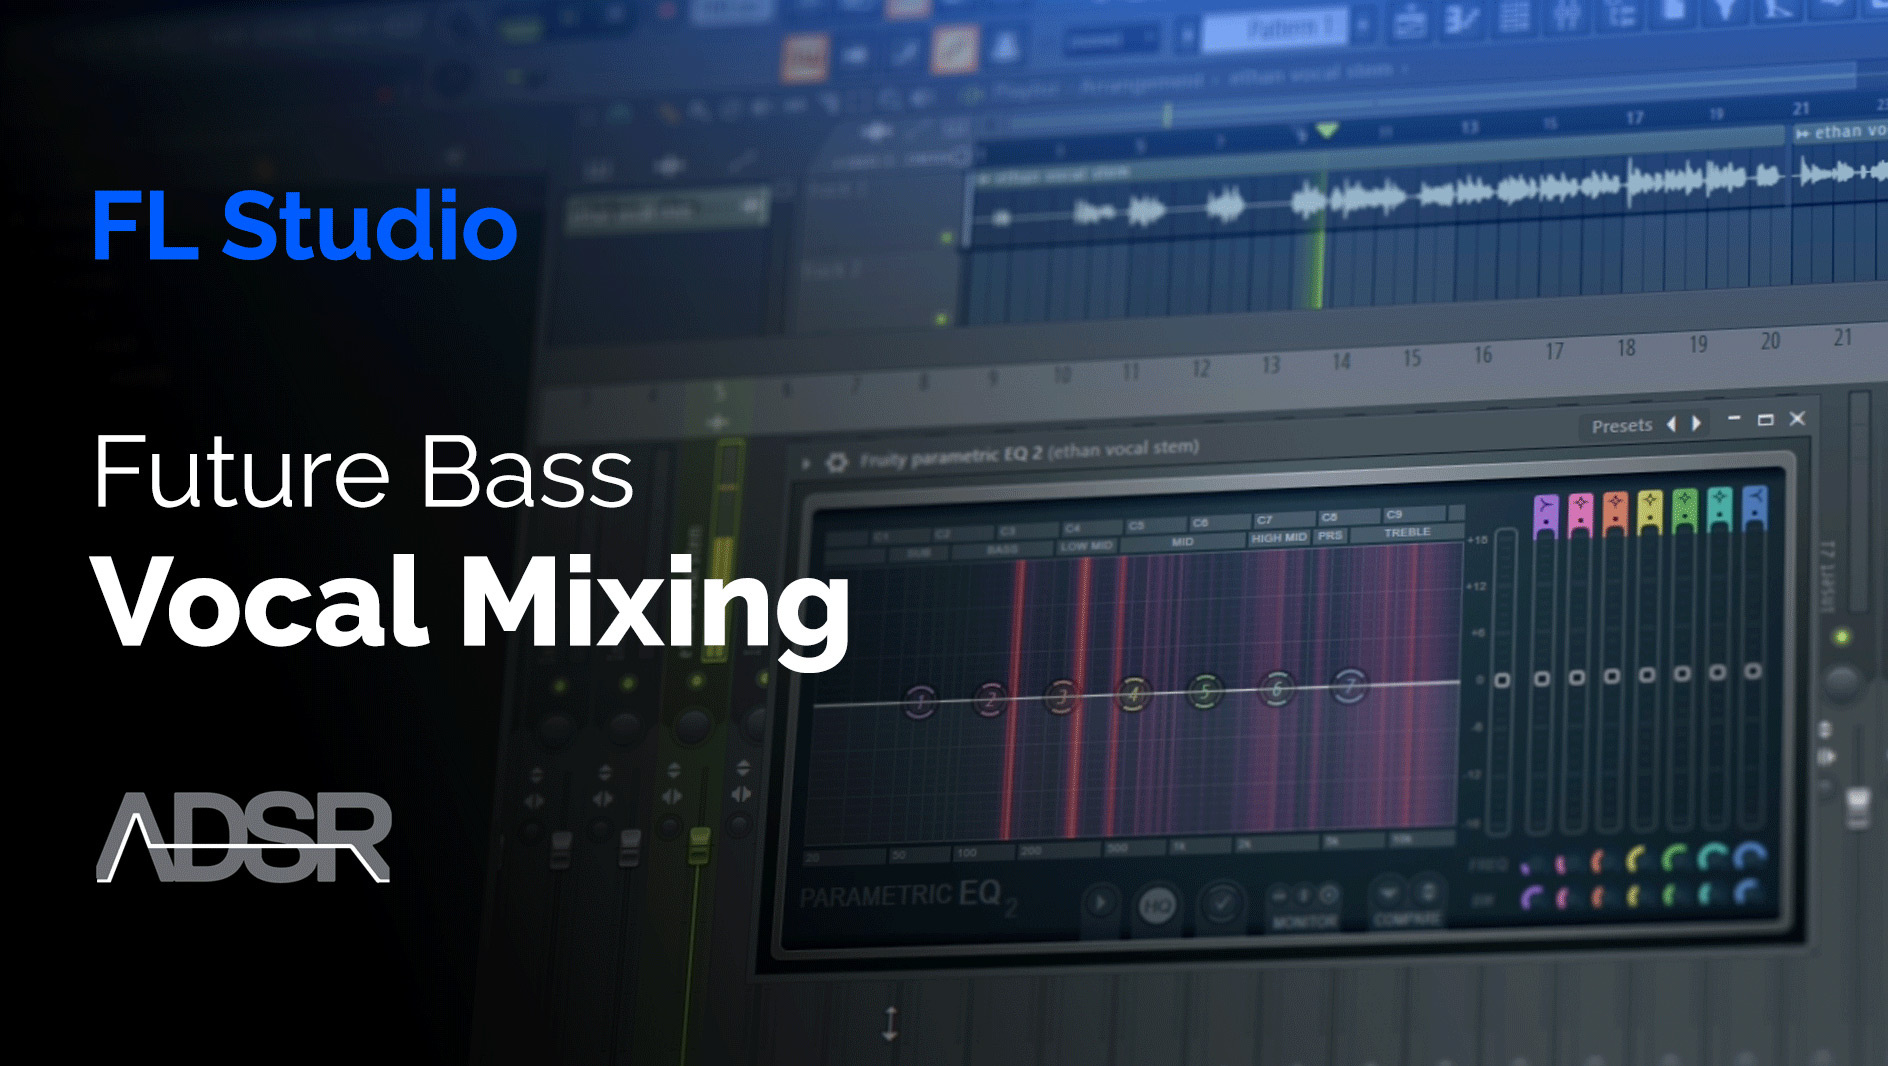 Vocal Mixing Essentials For Future Bass